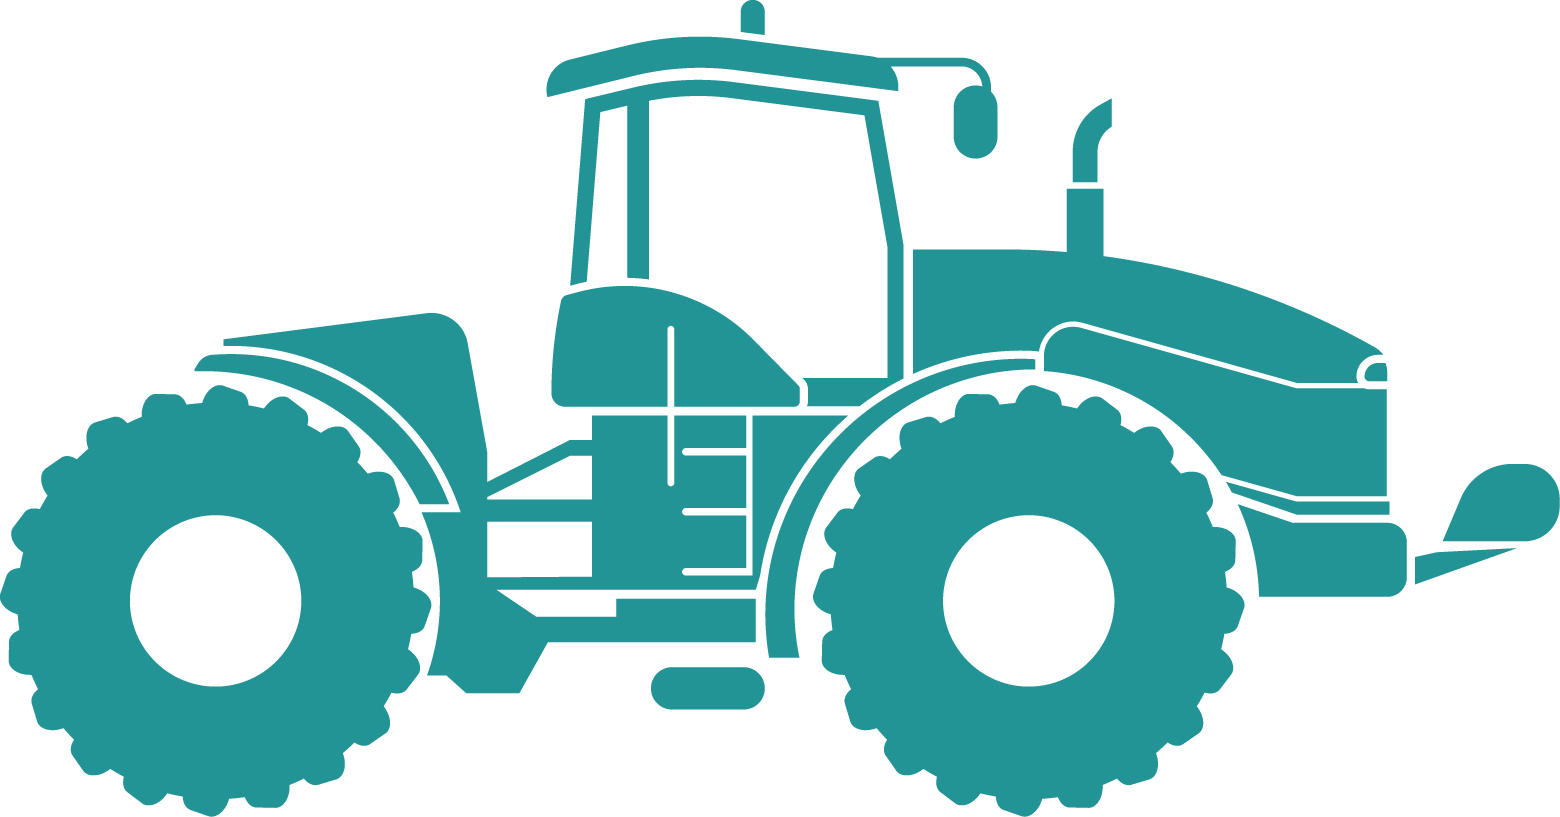 Agriculture agricultural machinery tractor. Farming clipart farm equipment